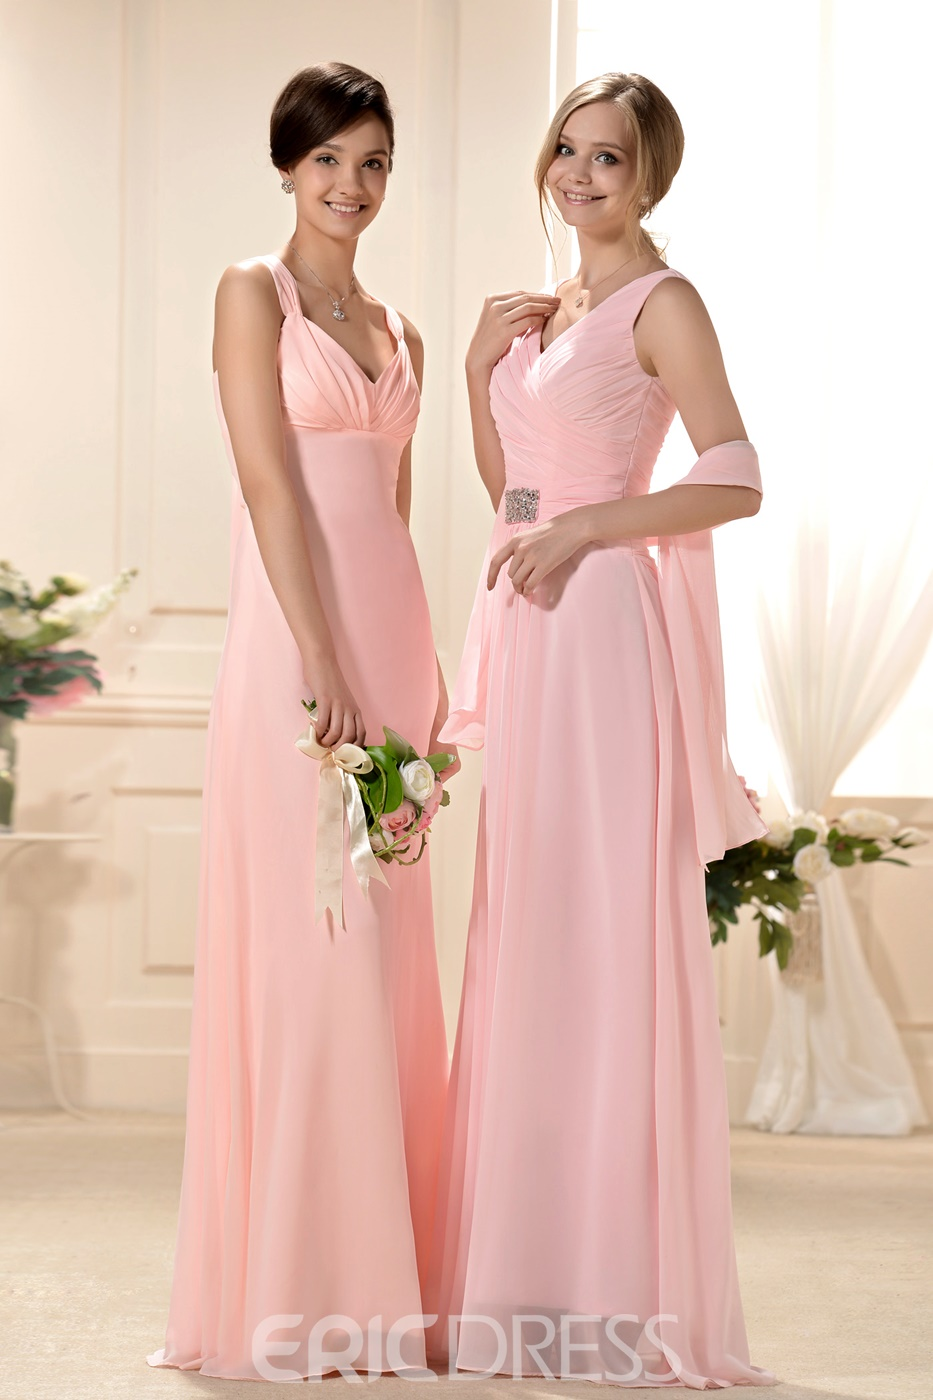 A-Line/Princess spaghetti straps Floor-Length Chiffon Bridesmaid dress for brides Design